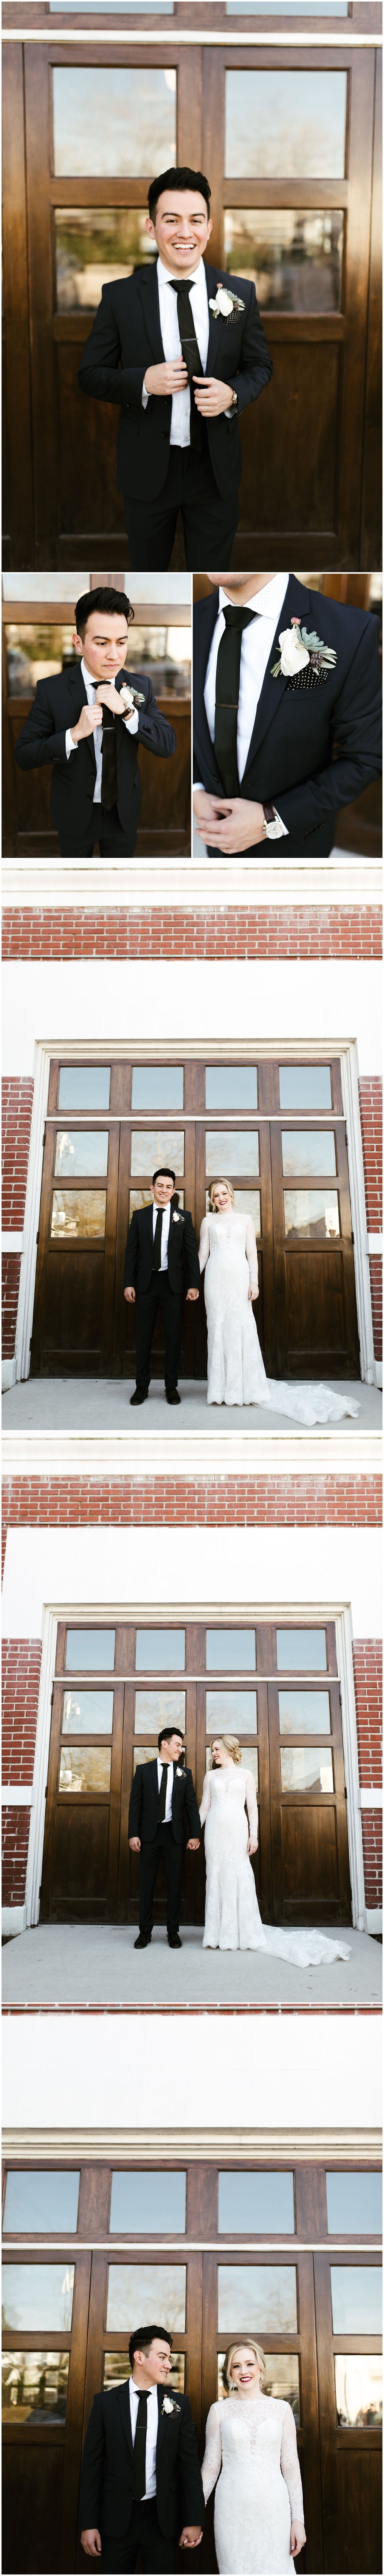 Houston Heights Fire Station Wedding | Jennifer+Ivan | Houston Heights Wedding Photographer |www.jordanmitchellphotography.com